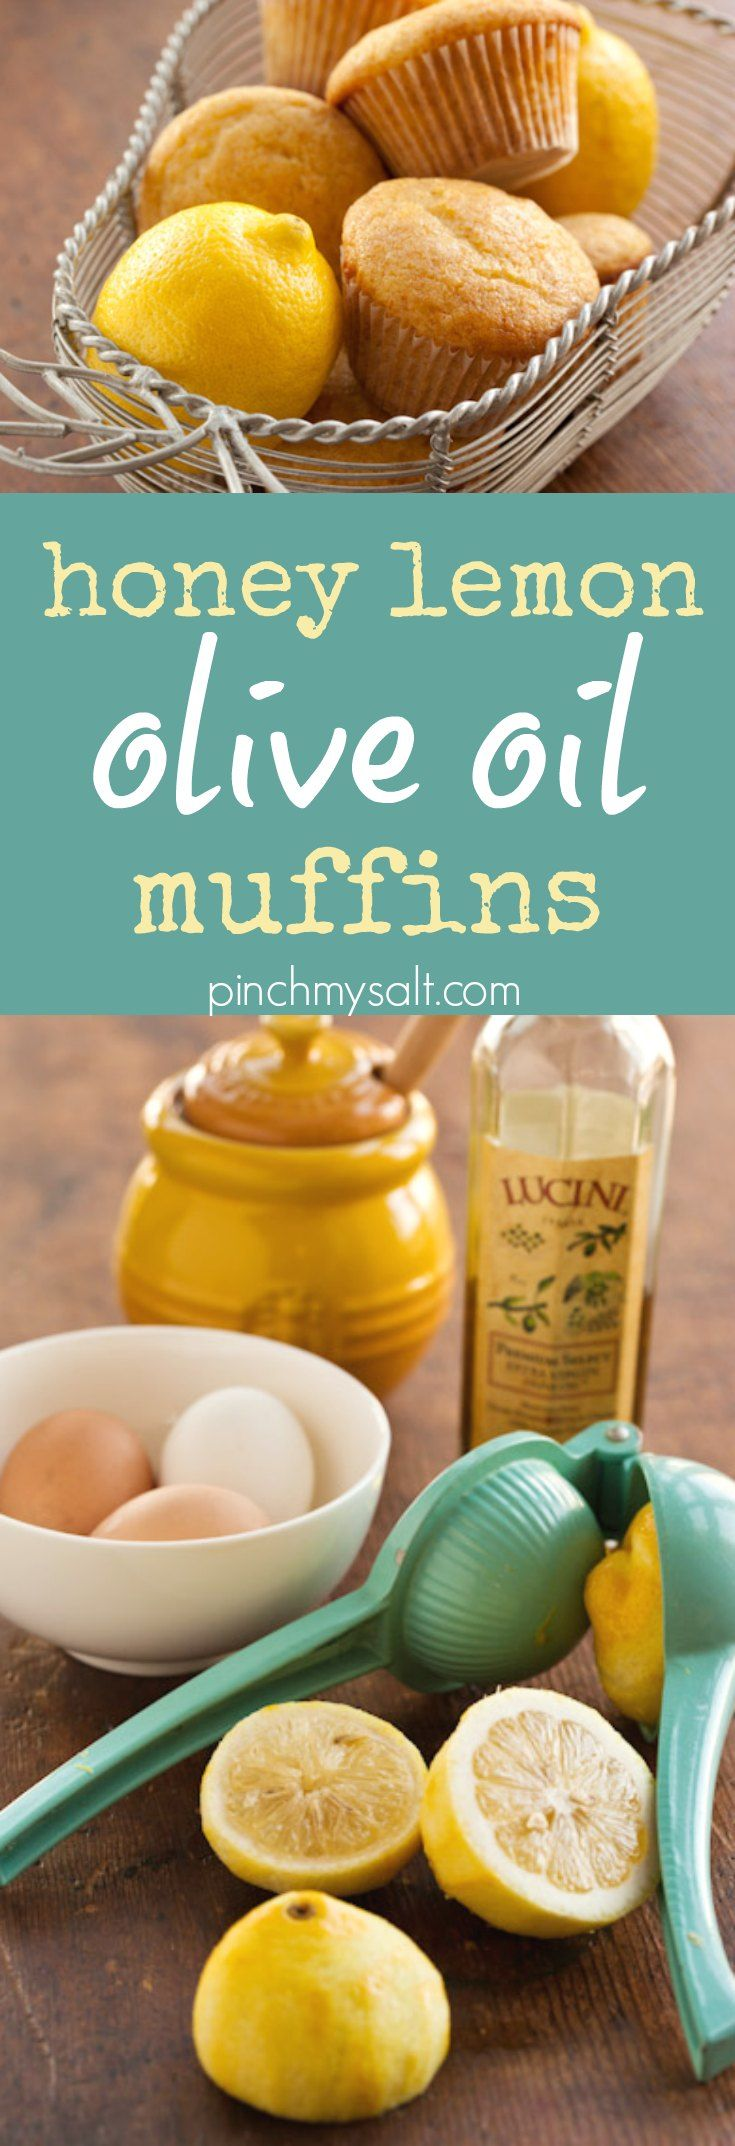 Honey Lemon Olive Oil Muffins Recipe #oliveoilcake